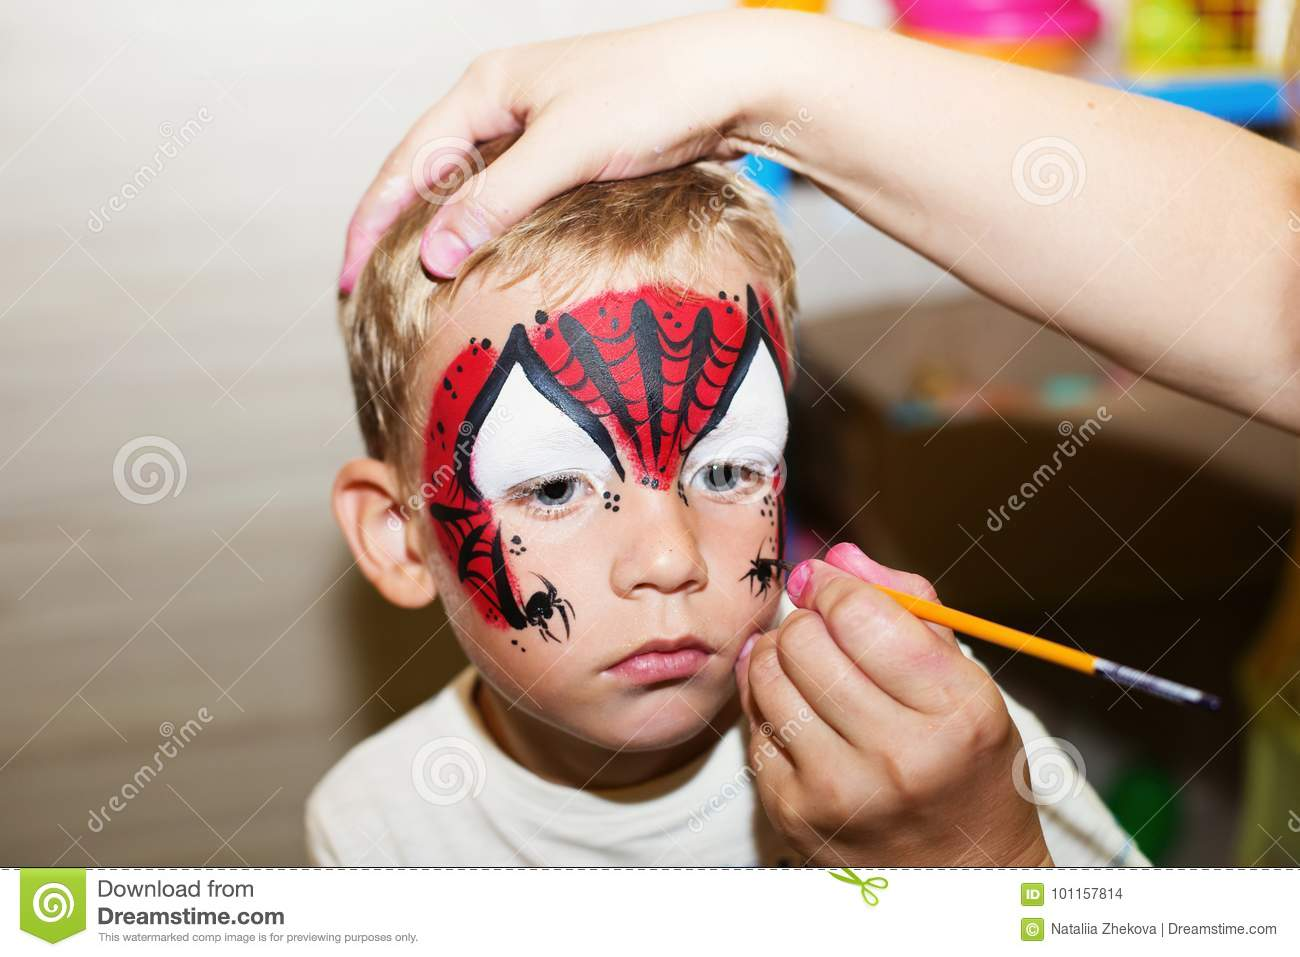 Halloween Makeup For Kids Boy.Master Making Aqua Makeup On Boys Face Stock Photo Image